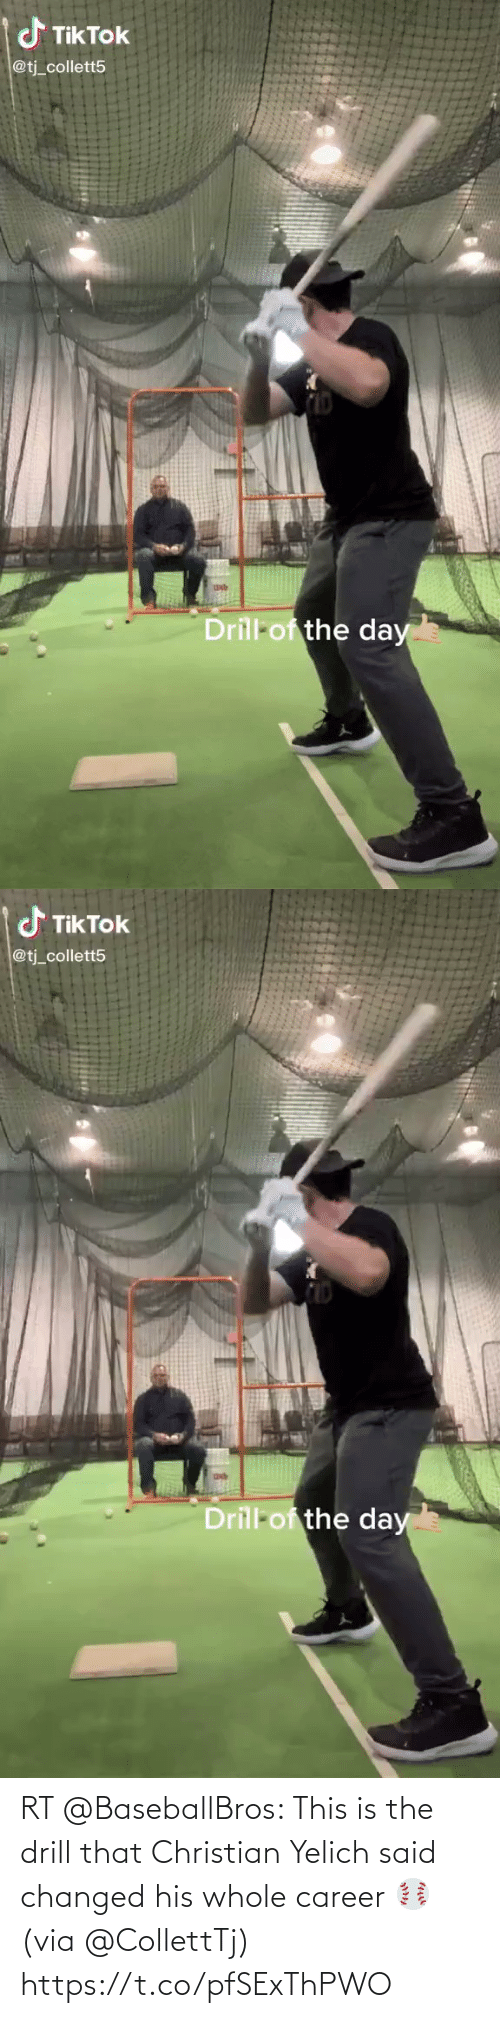 career: RT @BaseballBros: This is the drill that Christian Yelich said changed his whole career ⚾️ (via @CollettTj) https://t.co/pfSExThPWO